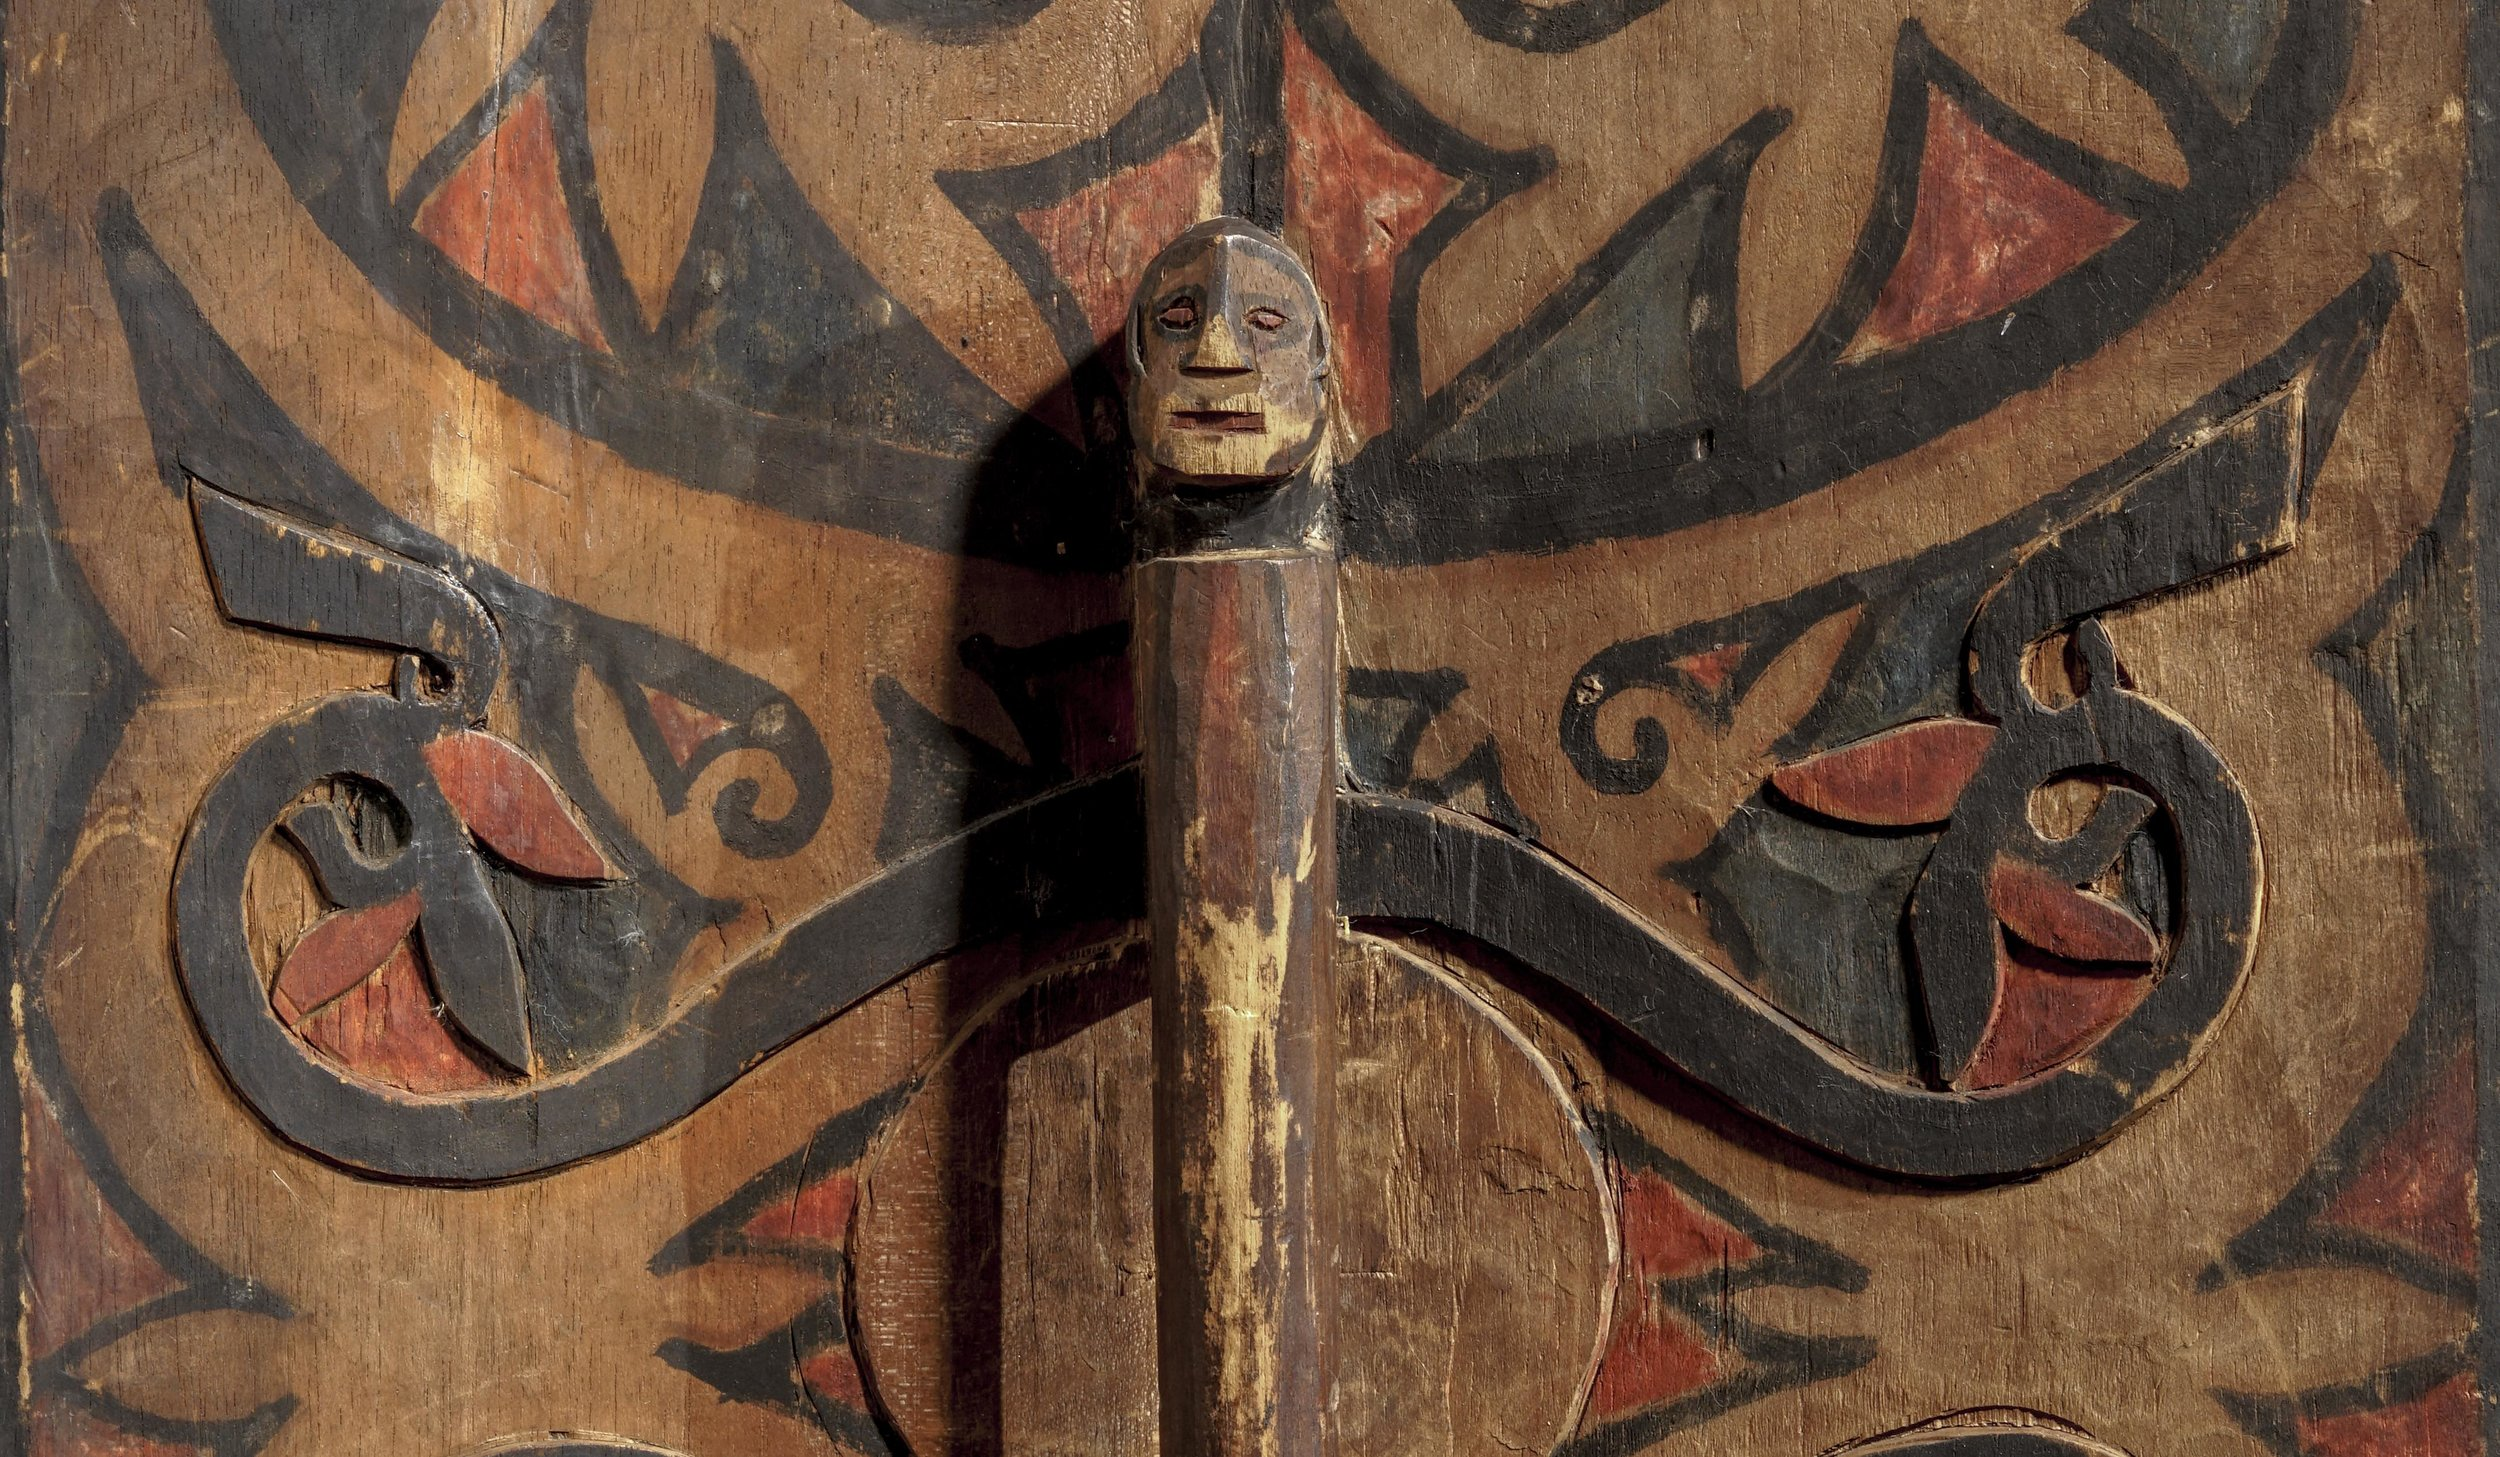 Dayak, probably Iban, 19th century. (Detail) Image courtesy of Bill Evans